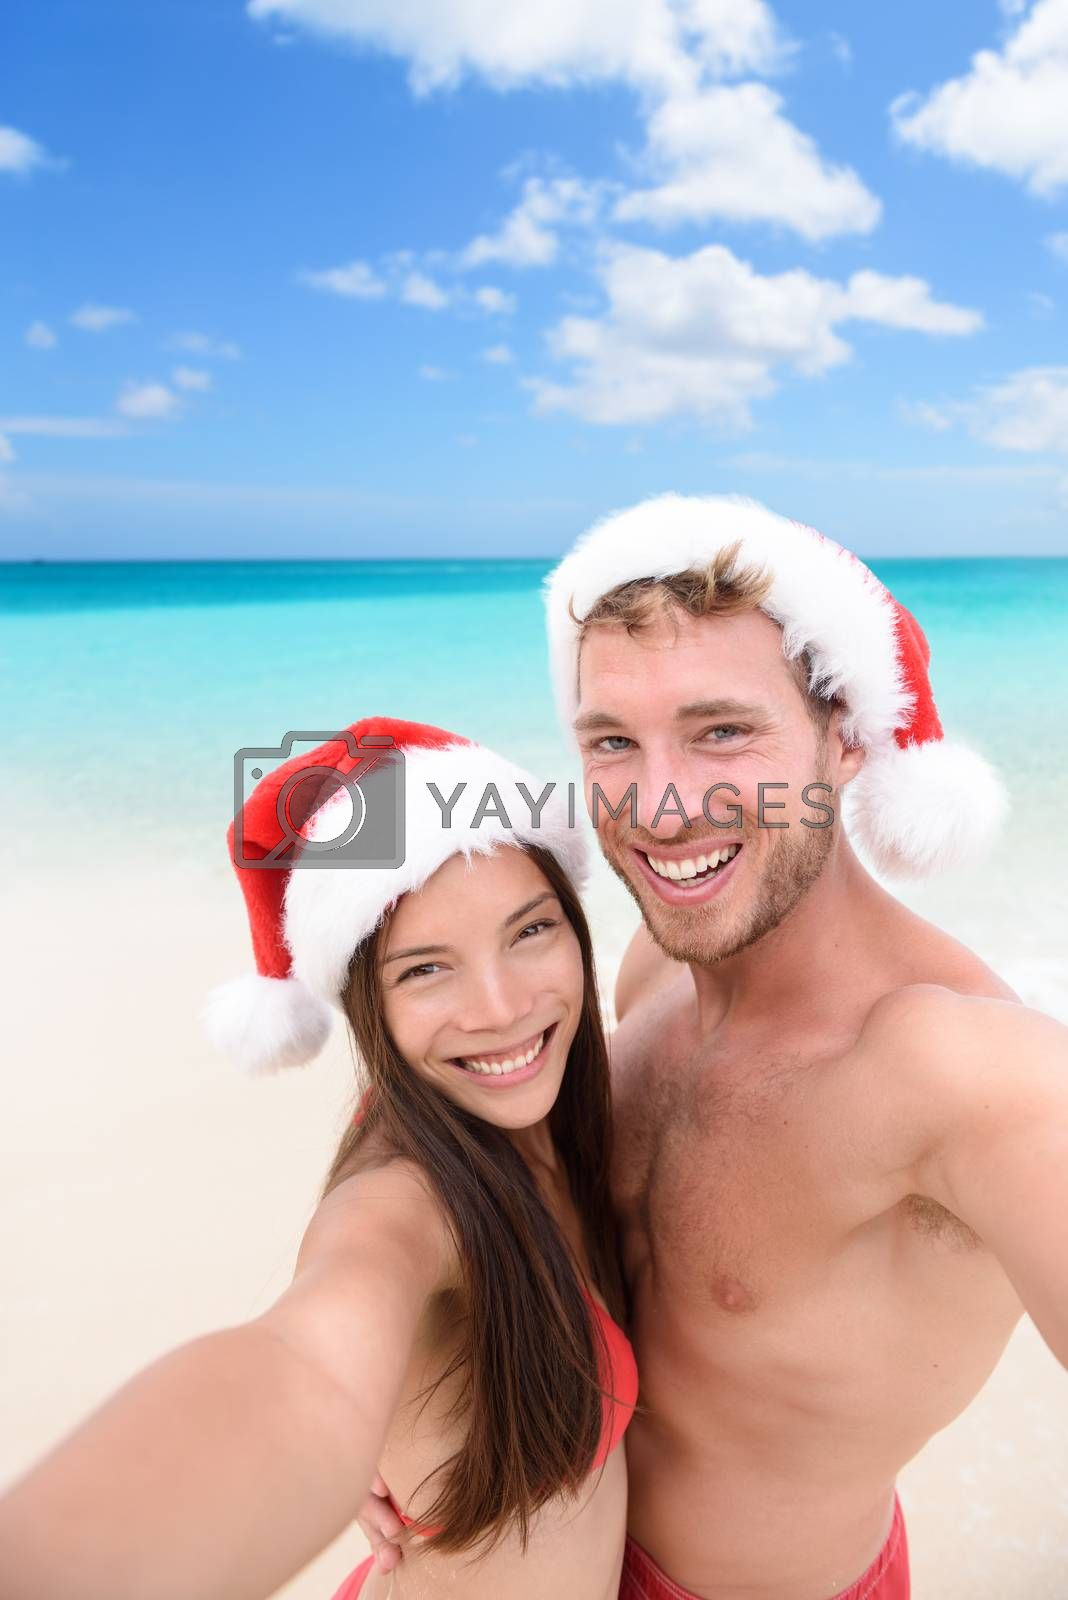 Happy couple on Christmas travel holidays taking selfie picture with smartphone wearing santa hat during their winter vacation. Young adult friends in swimsuit and bikini in front of the ocean.